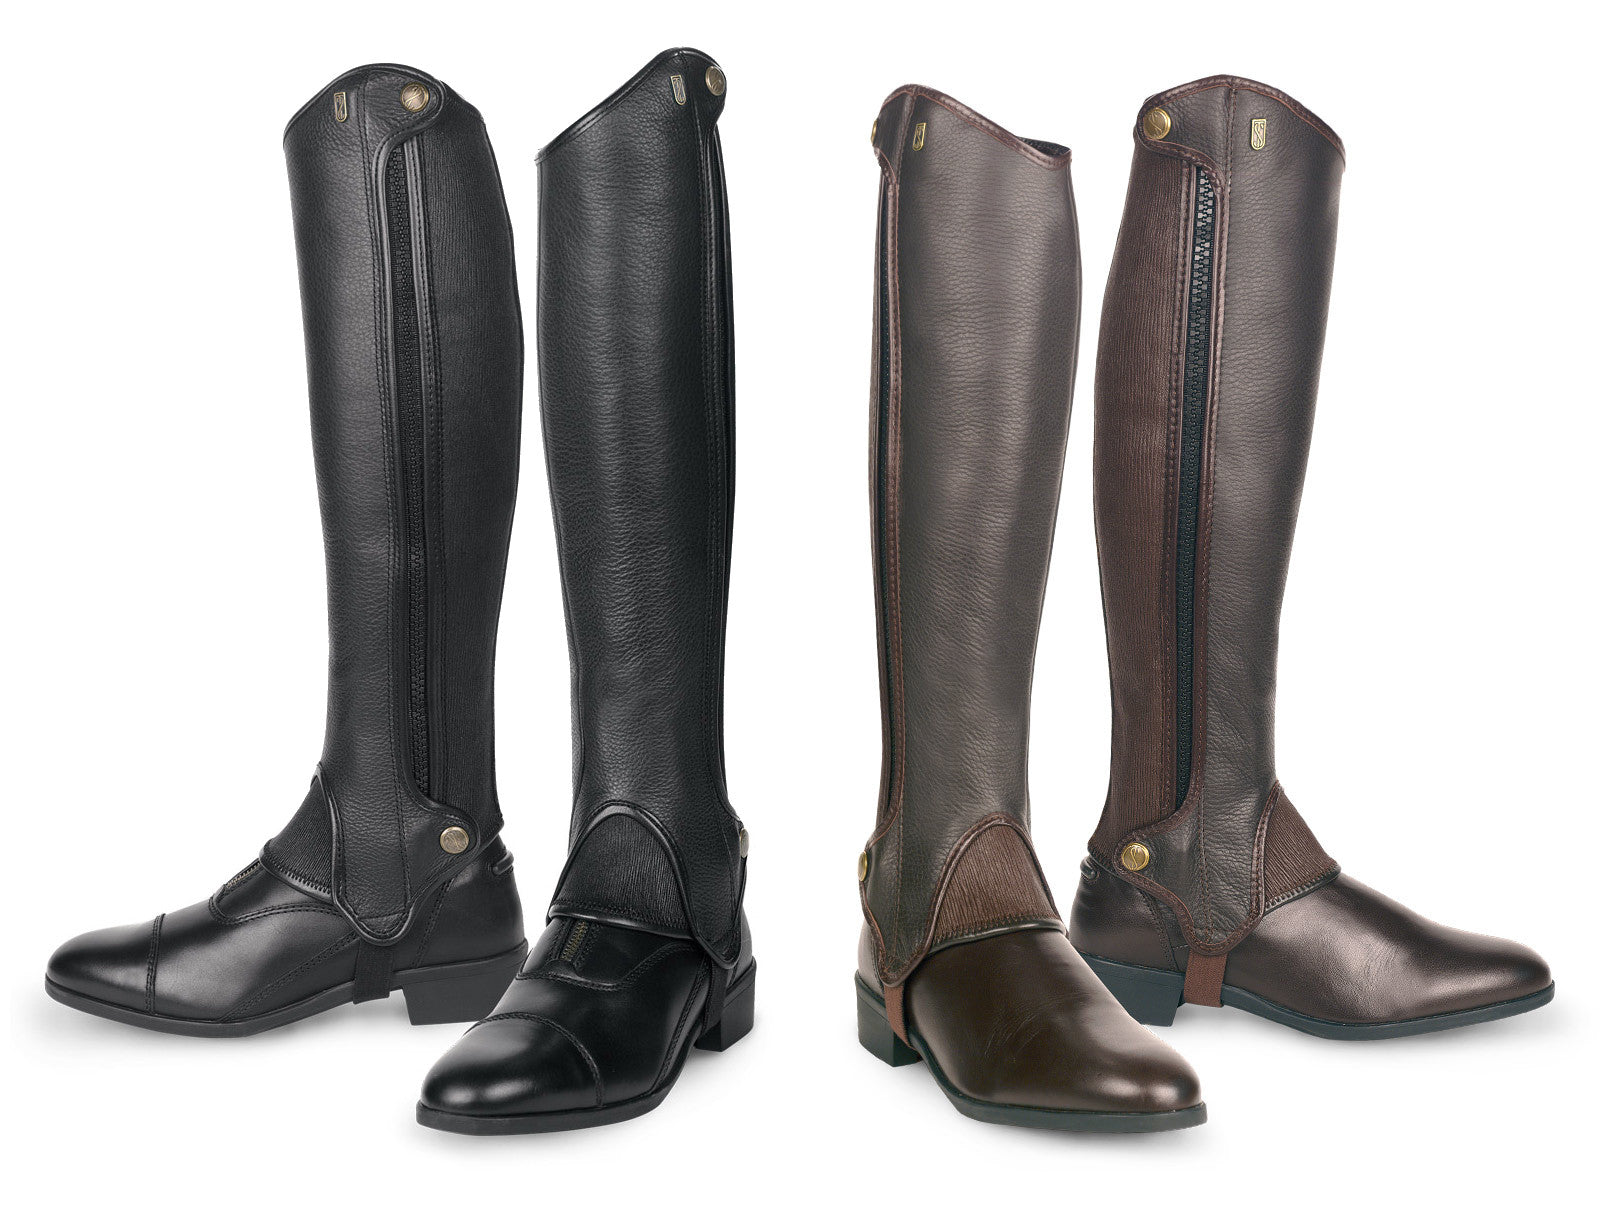 Tredstep Deluxe Half Chaps - North Shore Saddlery